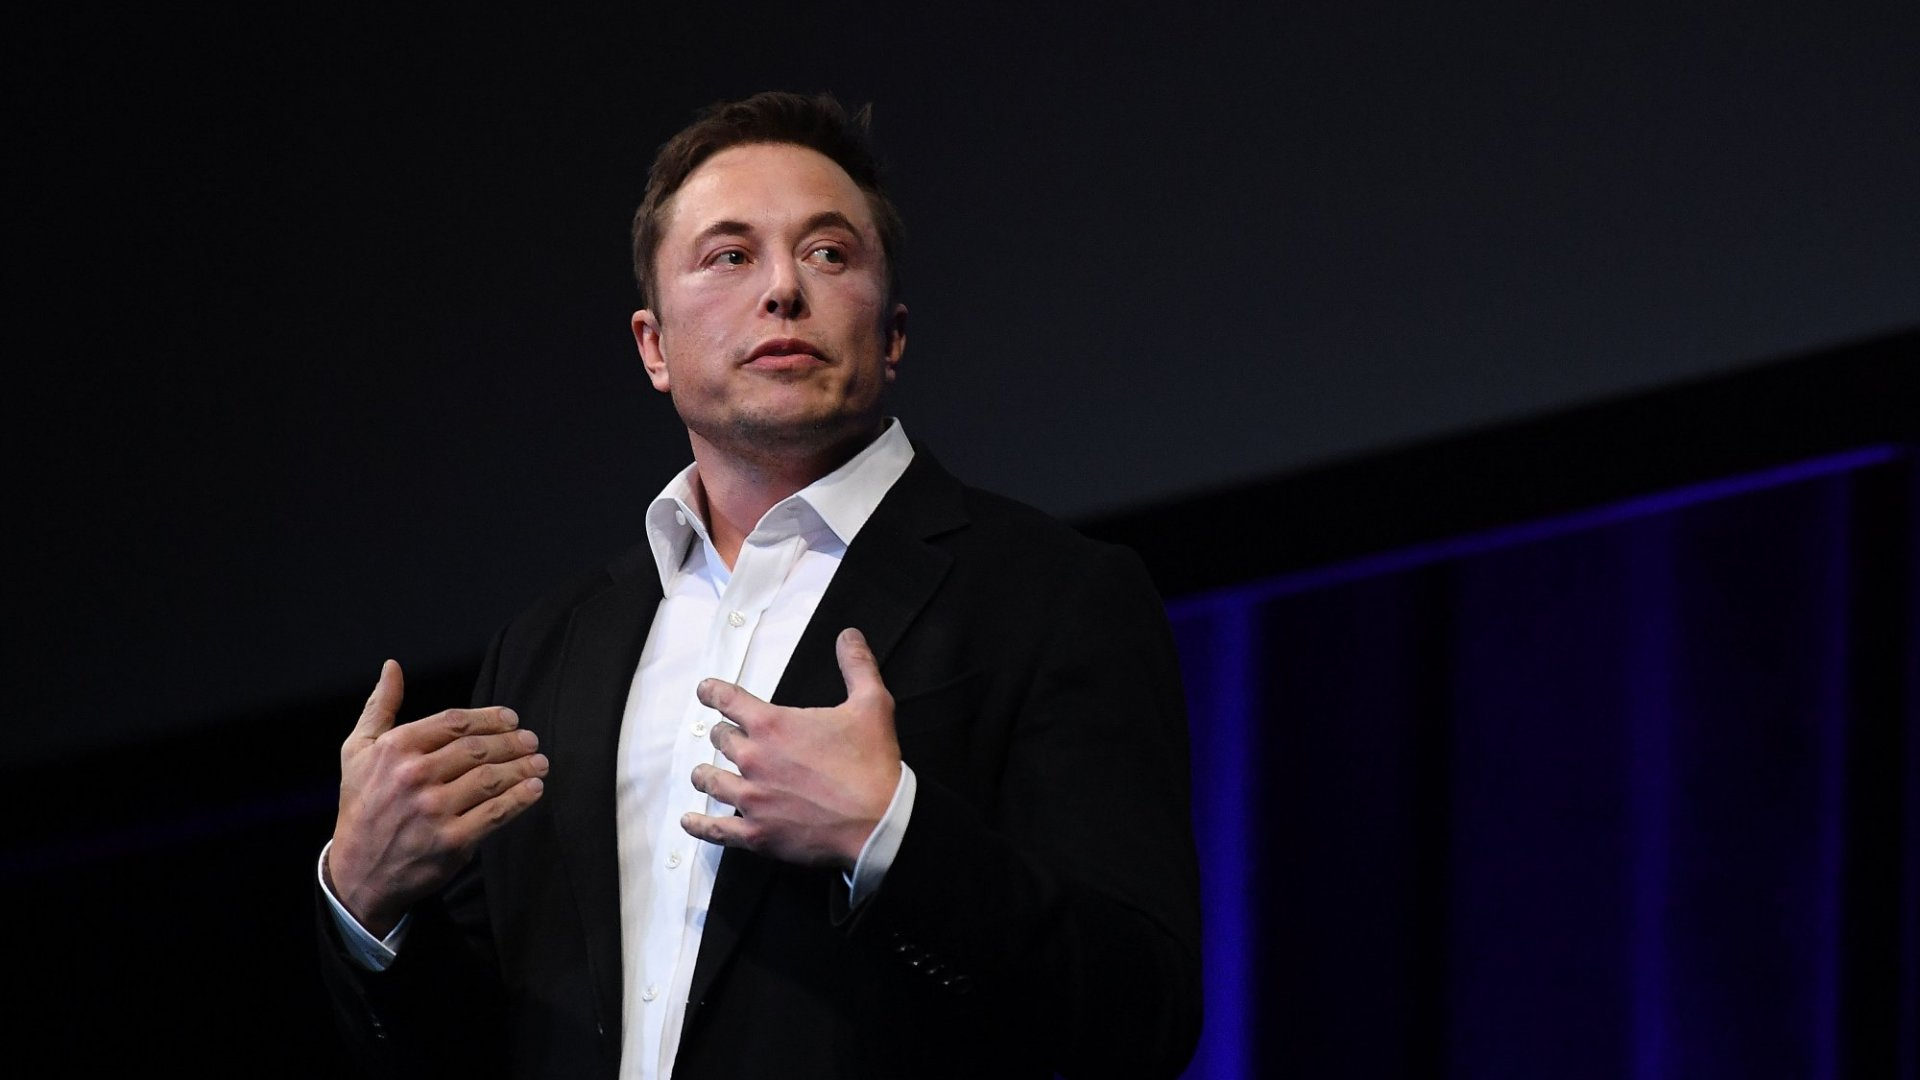 Elon Musk: 'If We Can Send a Roadster to the Asteroid Belt, We Can Probably Solve Model 3 Production'